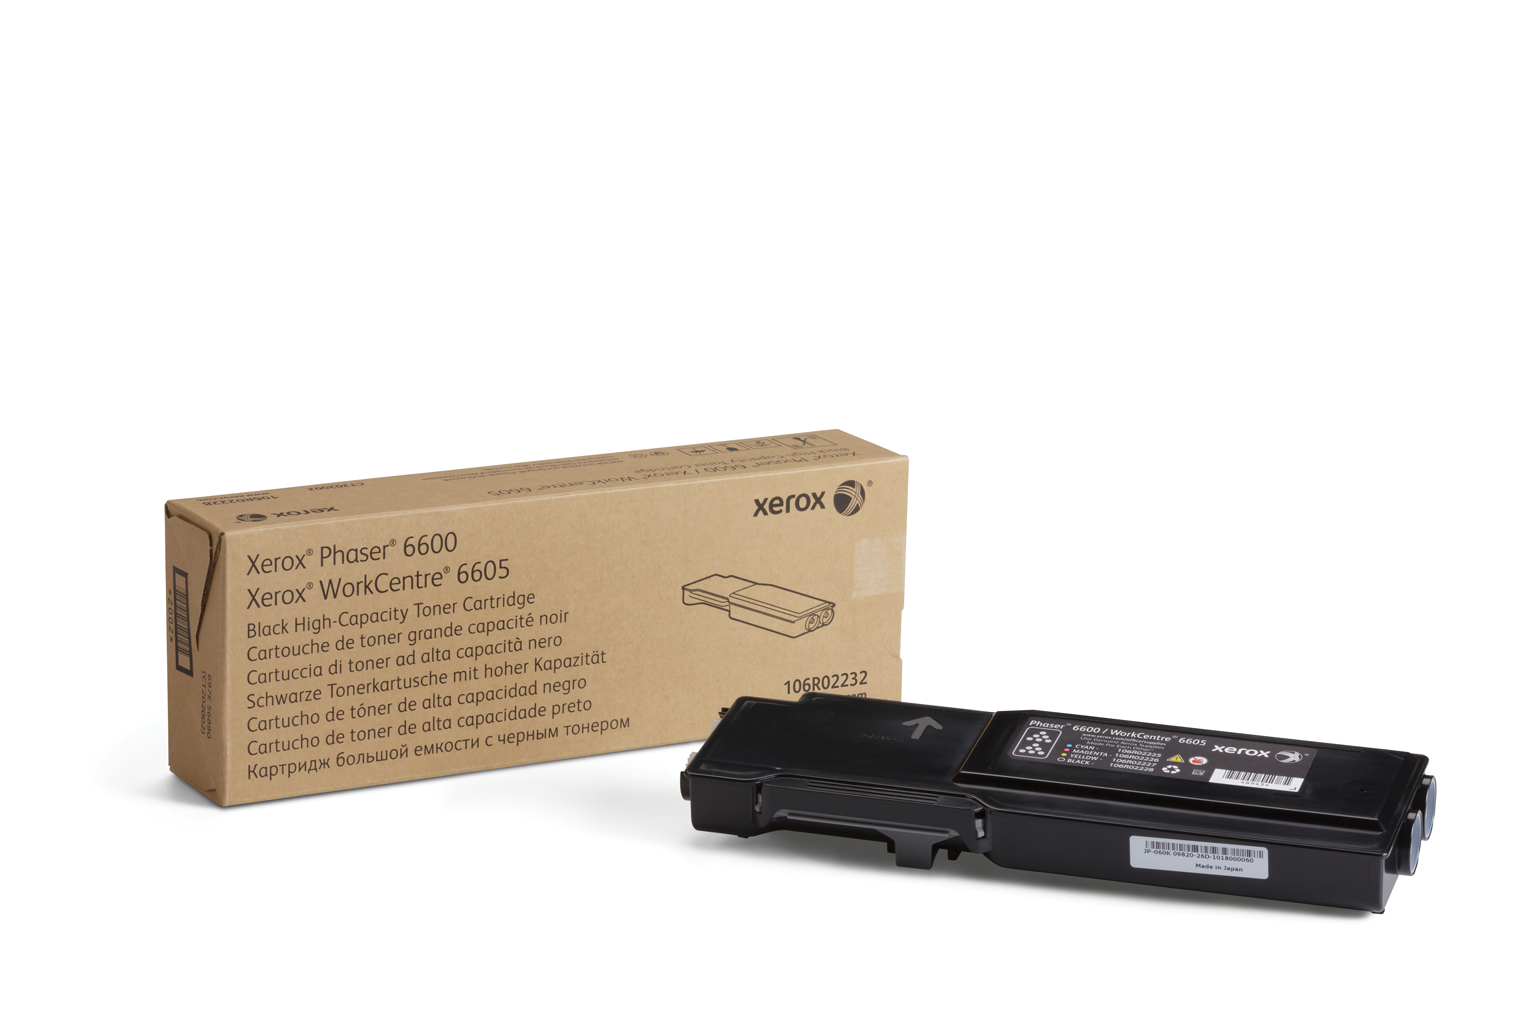 Xer106r02232   Xerox Phaser 6600 Black Toner  High Capacity 8k                                             - UF01